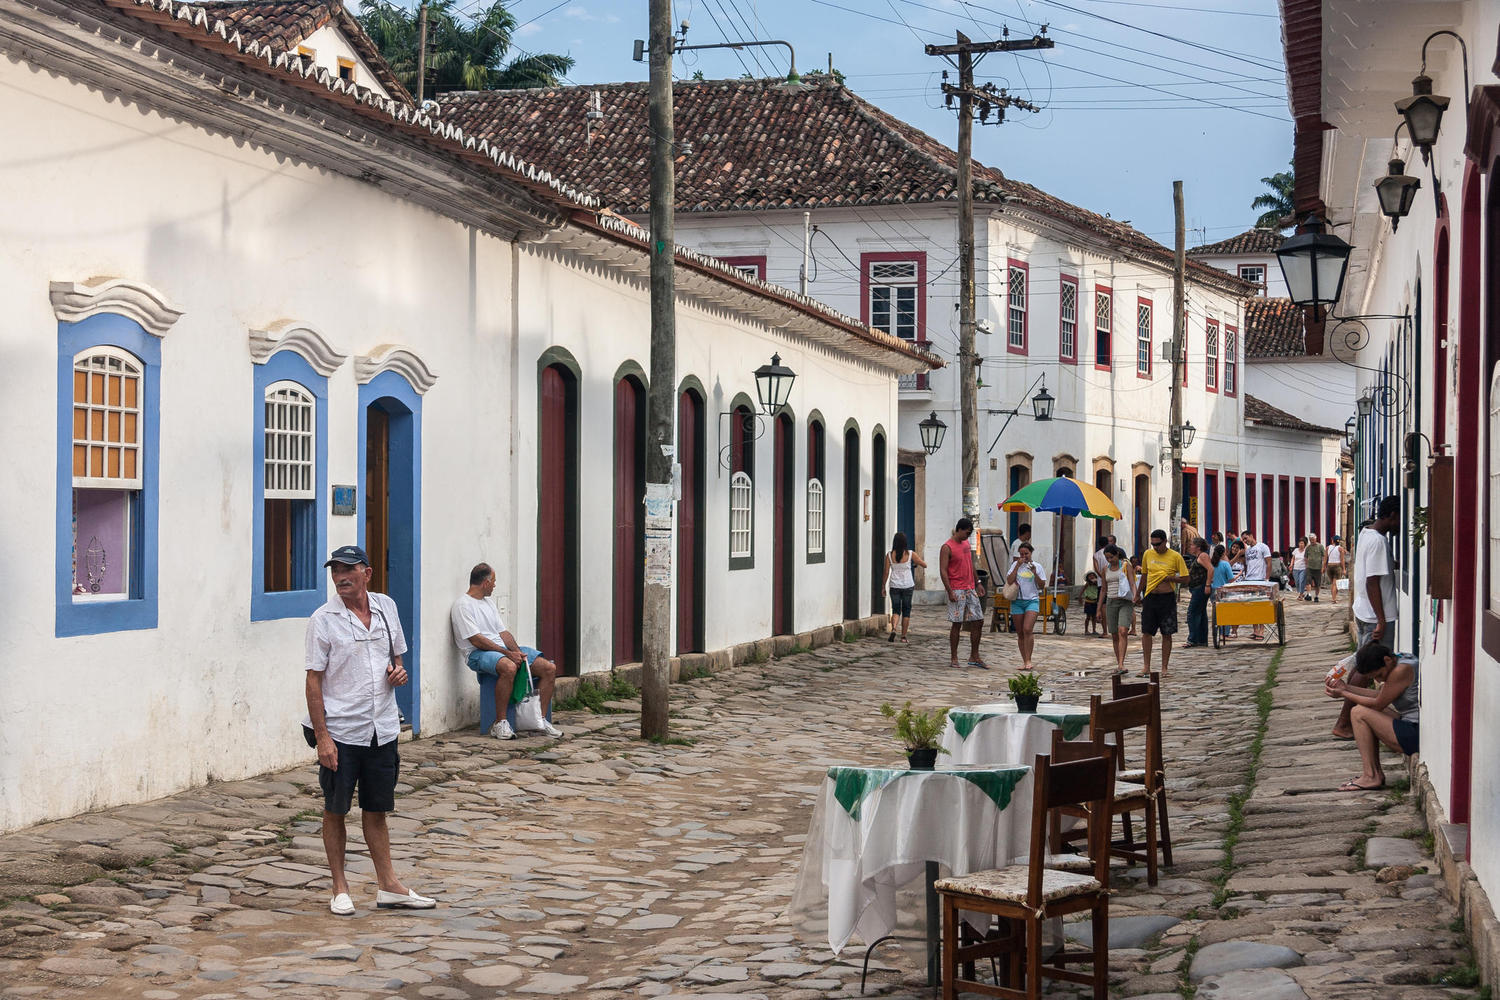 The cobblestones of colonial Paraty, Brazil